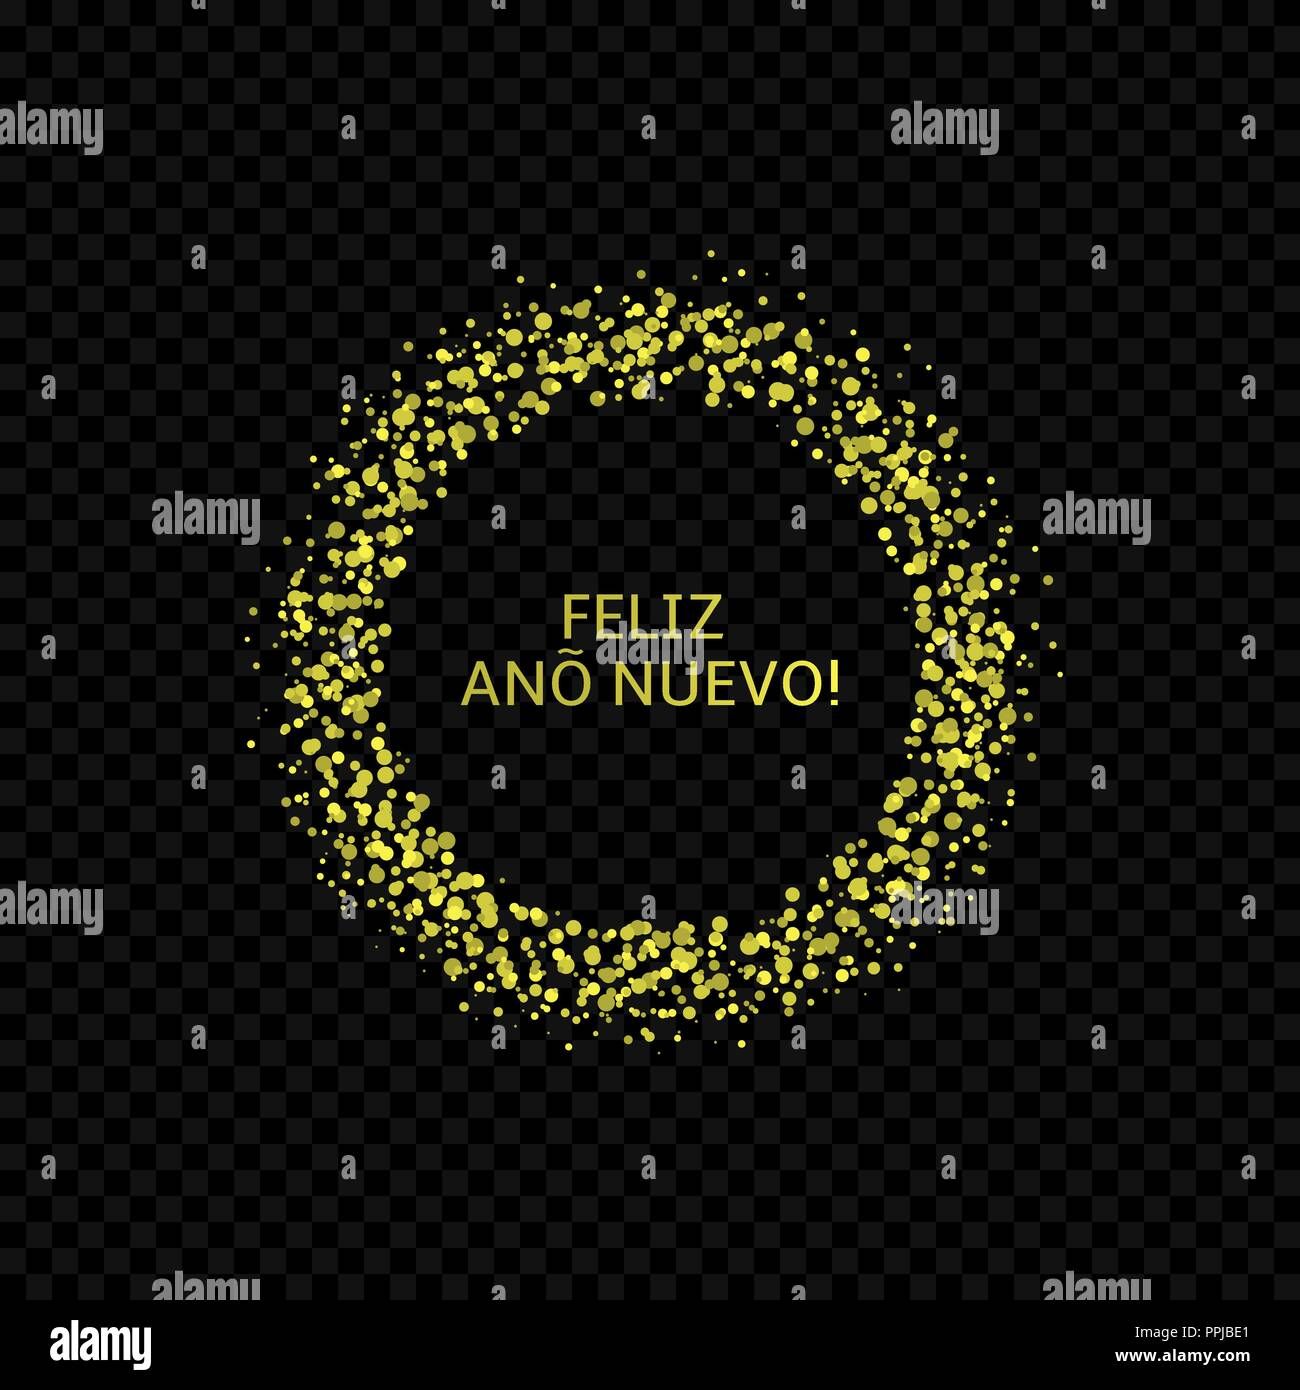 Spanish New Year label - Stock Image